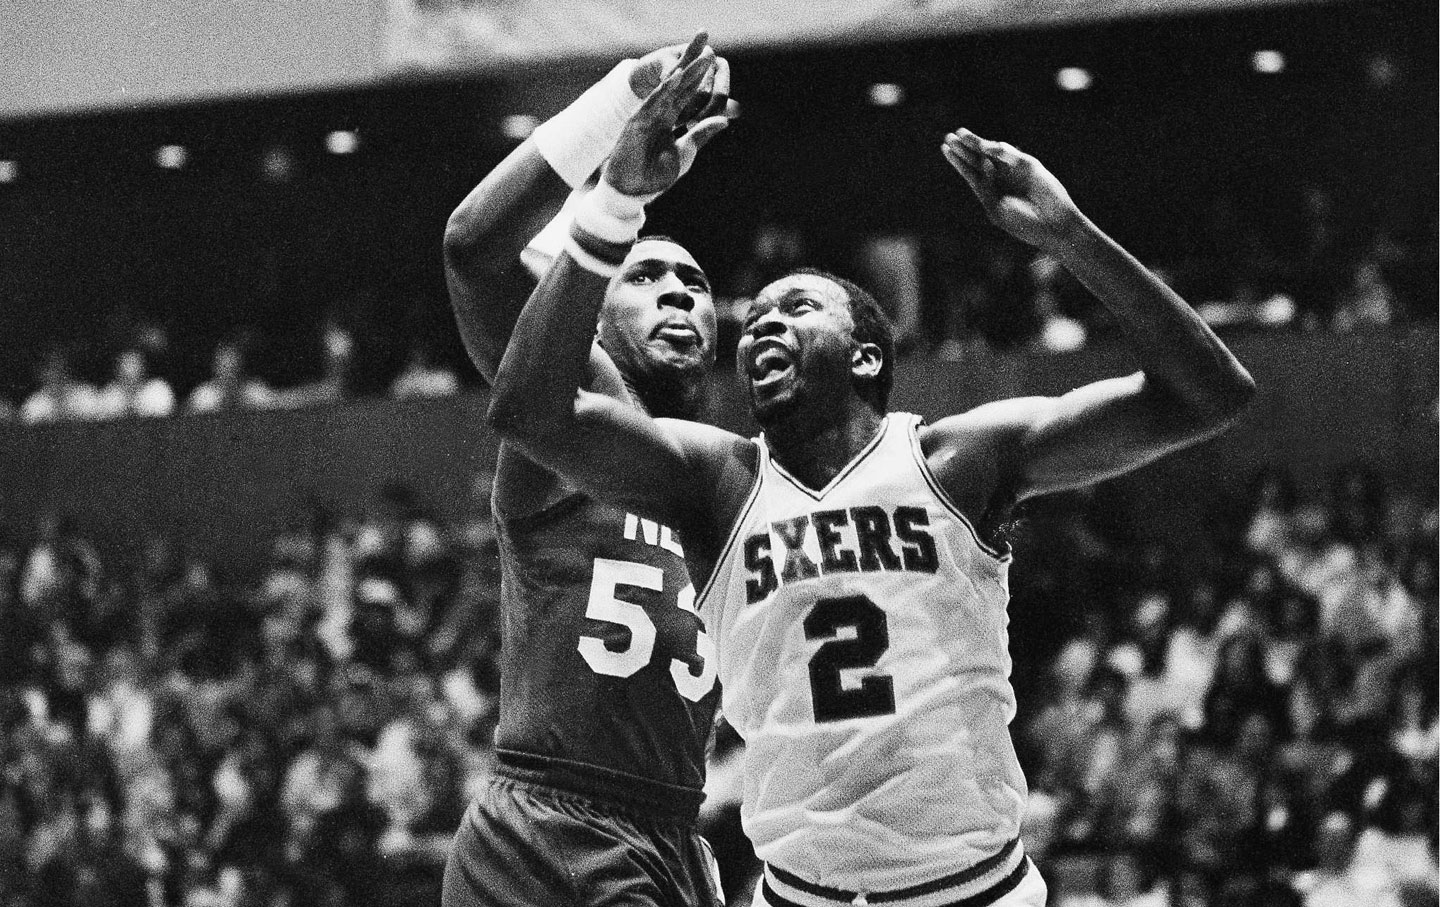 The Prophets the Conjoined Legacies of Moses Malone and